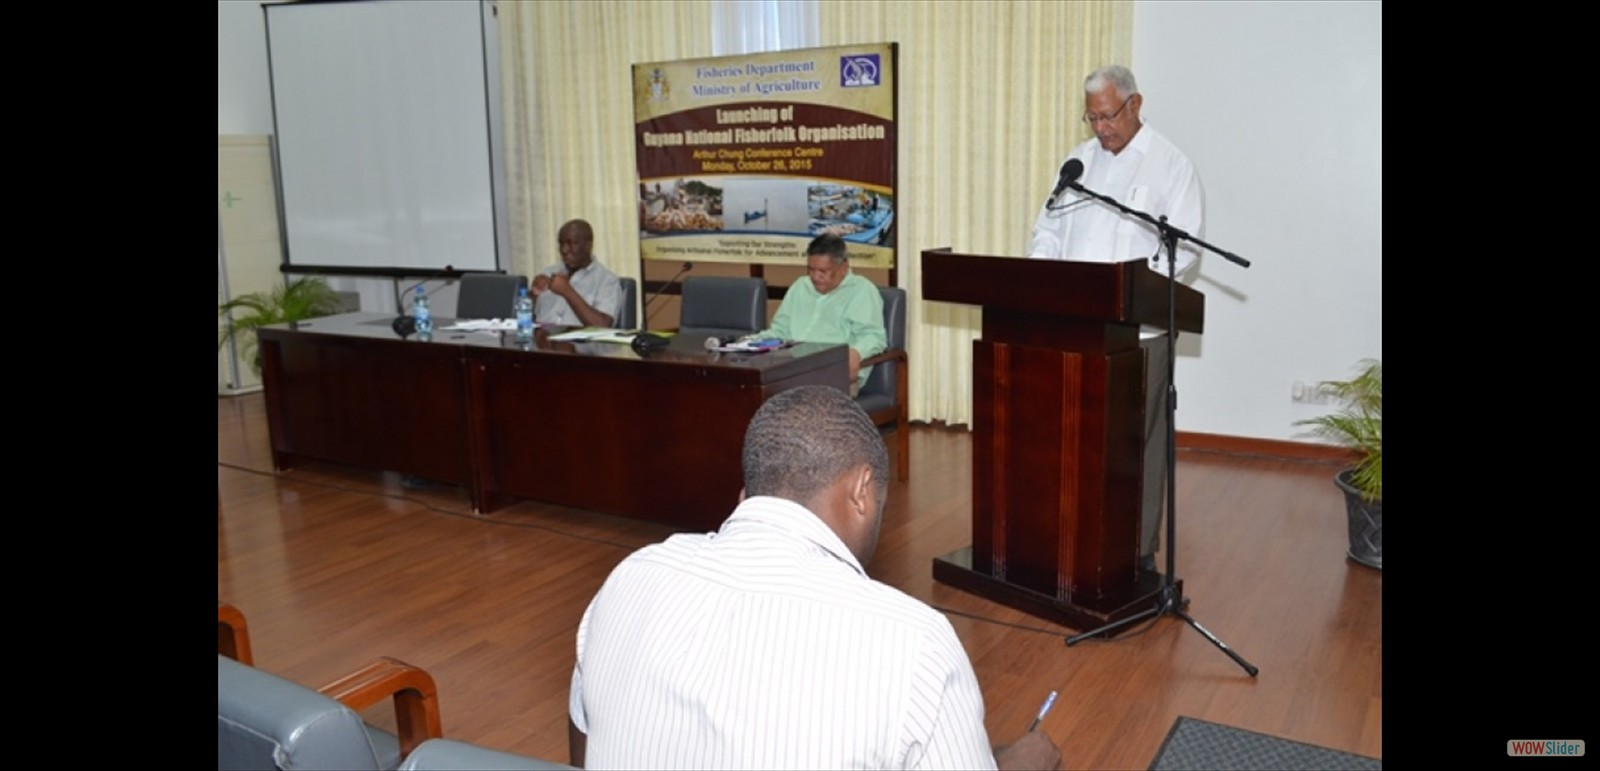 Agriculture Minister Noel Holder addressing fisherfolks at the launch of the Guyana National Fisherfolks Organisation